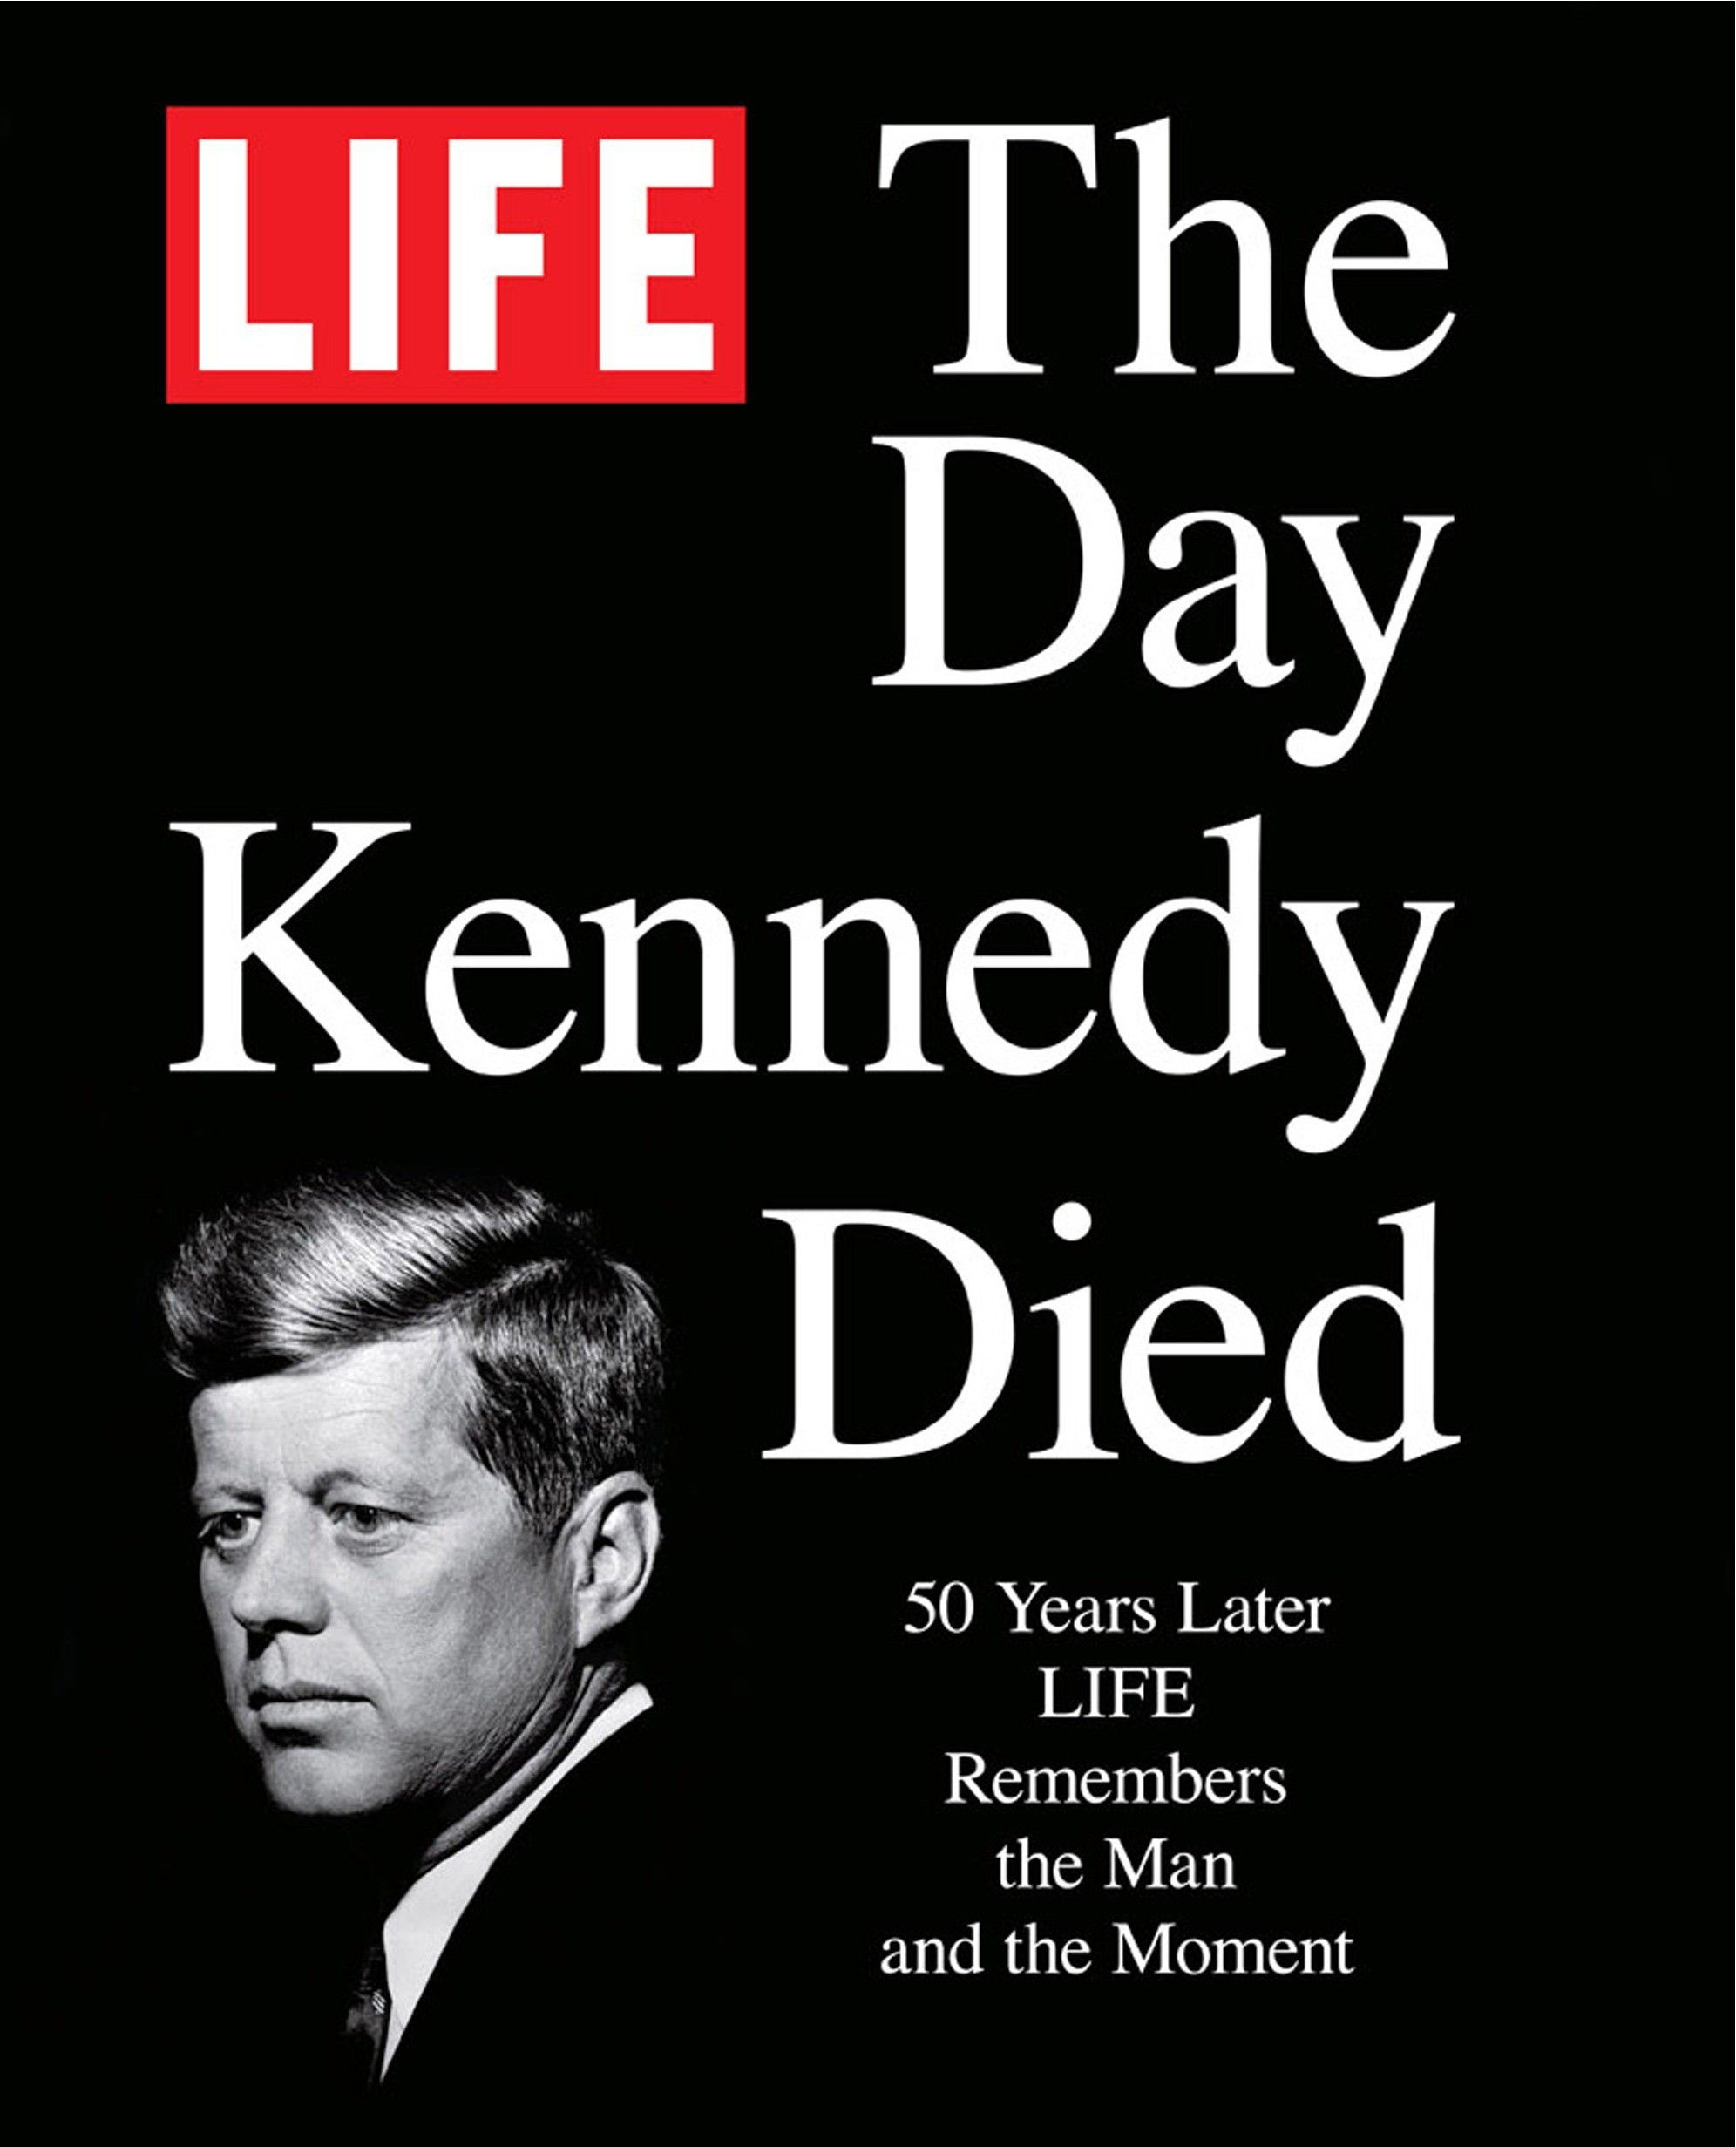 life magazine cover nostaglia remembering both the man and the moment life the day kennedy died is chock full of fascinating material including bulljackie s famous camelot interview